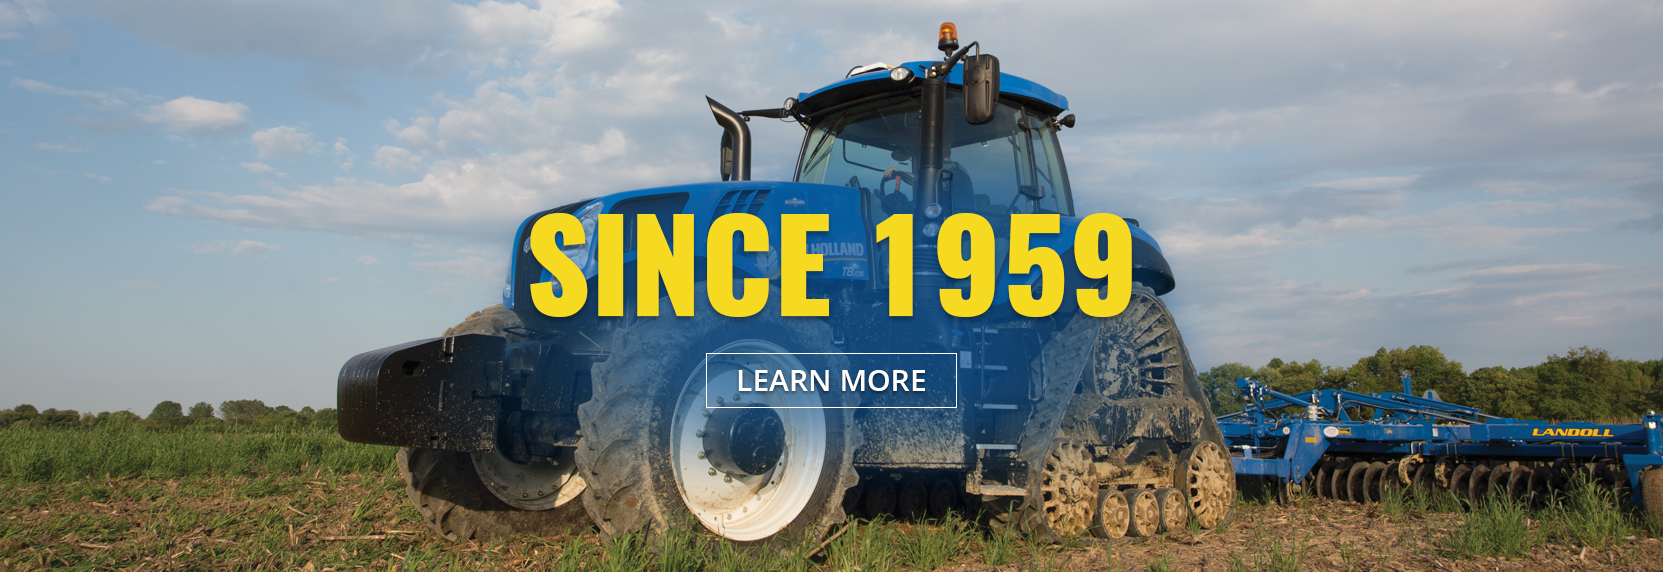 Since 1959 Altman Tractor Company has been dedicated to providing the best service and advice to our customers - Click here to learn more.